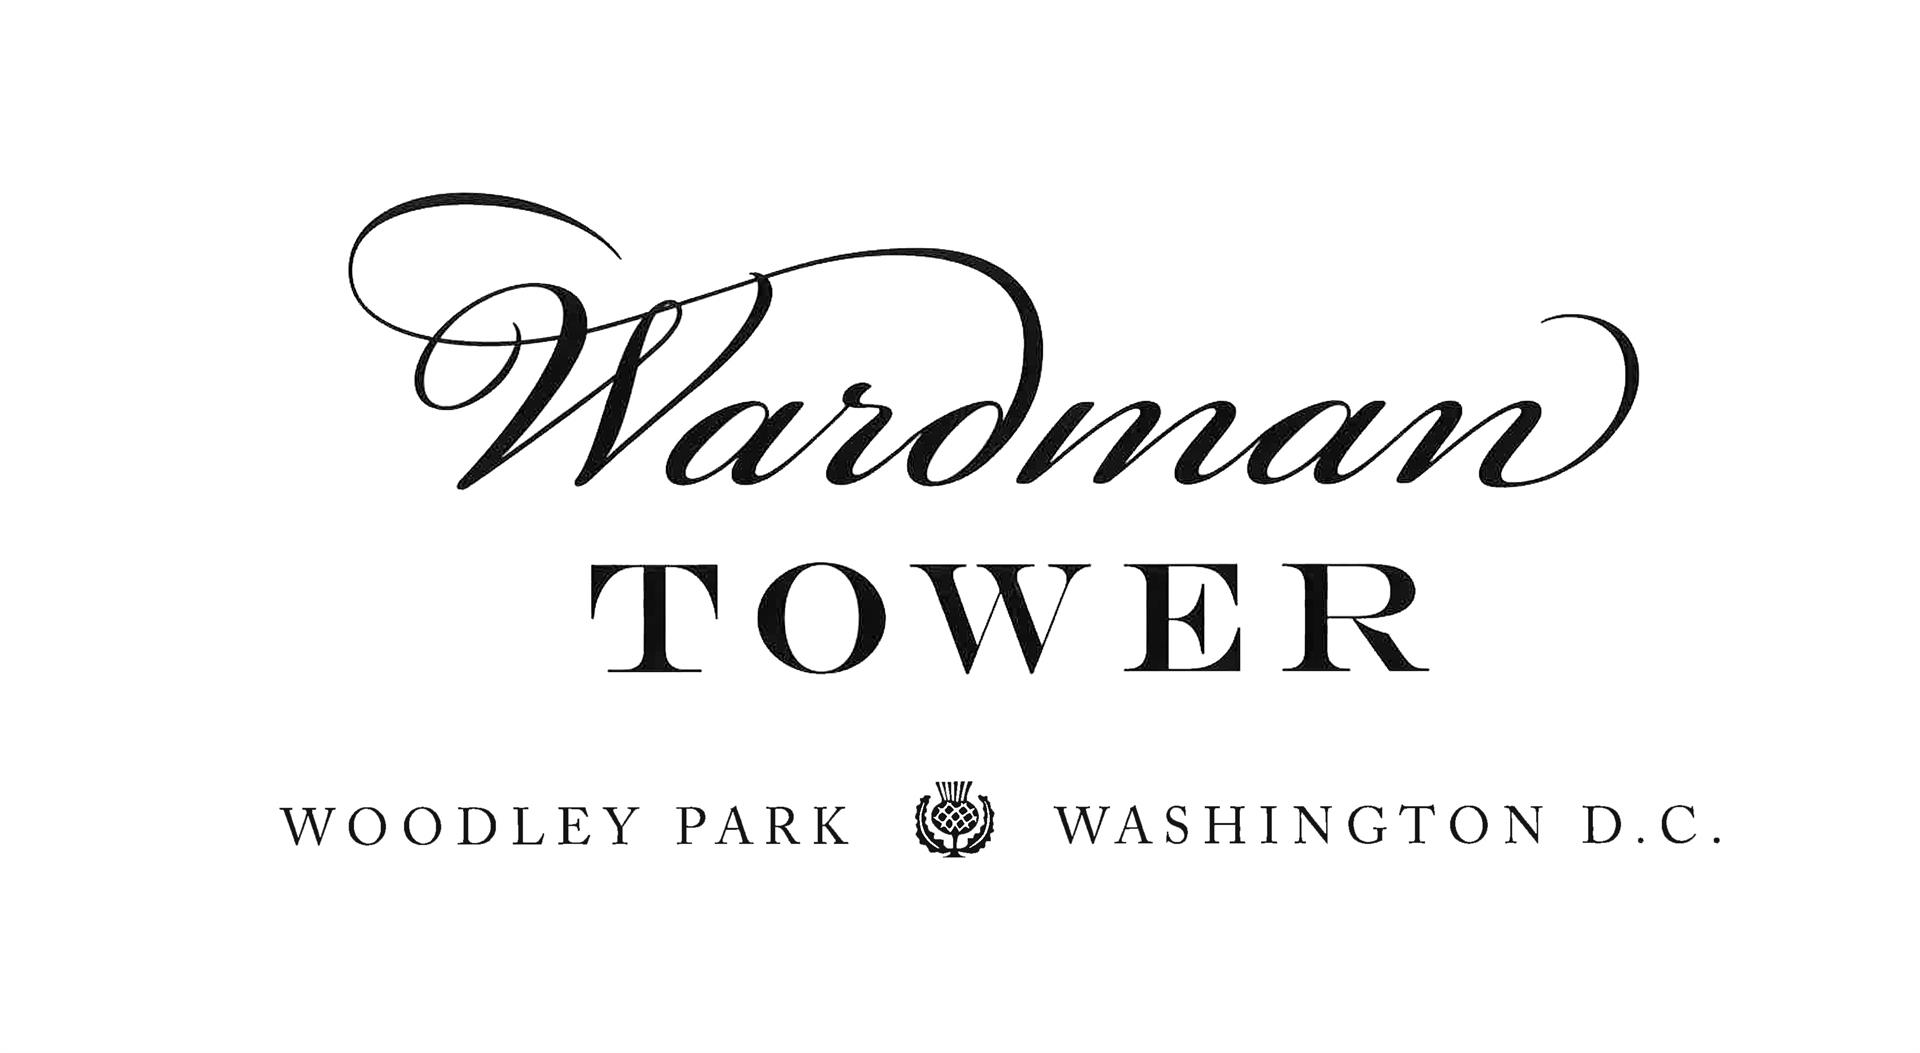 Wardman Tower | Plans, Prices, Availability